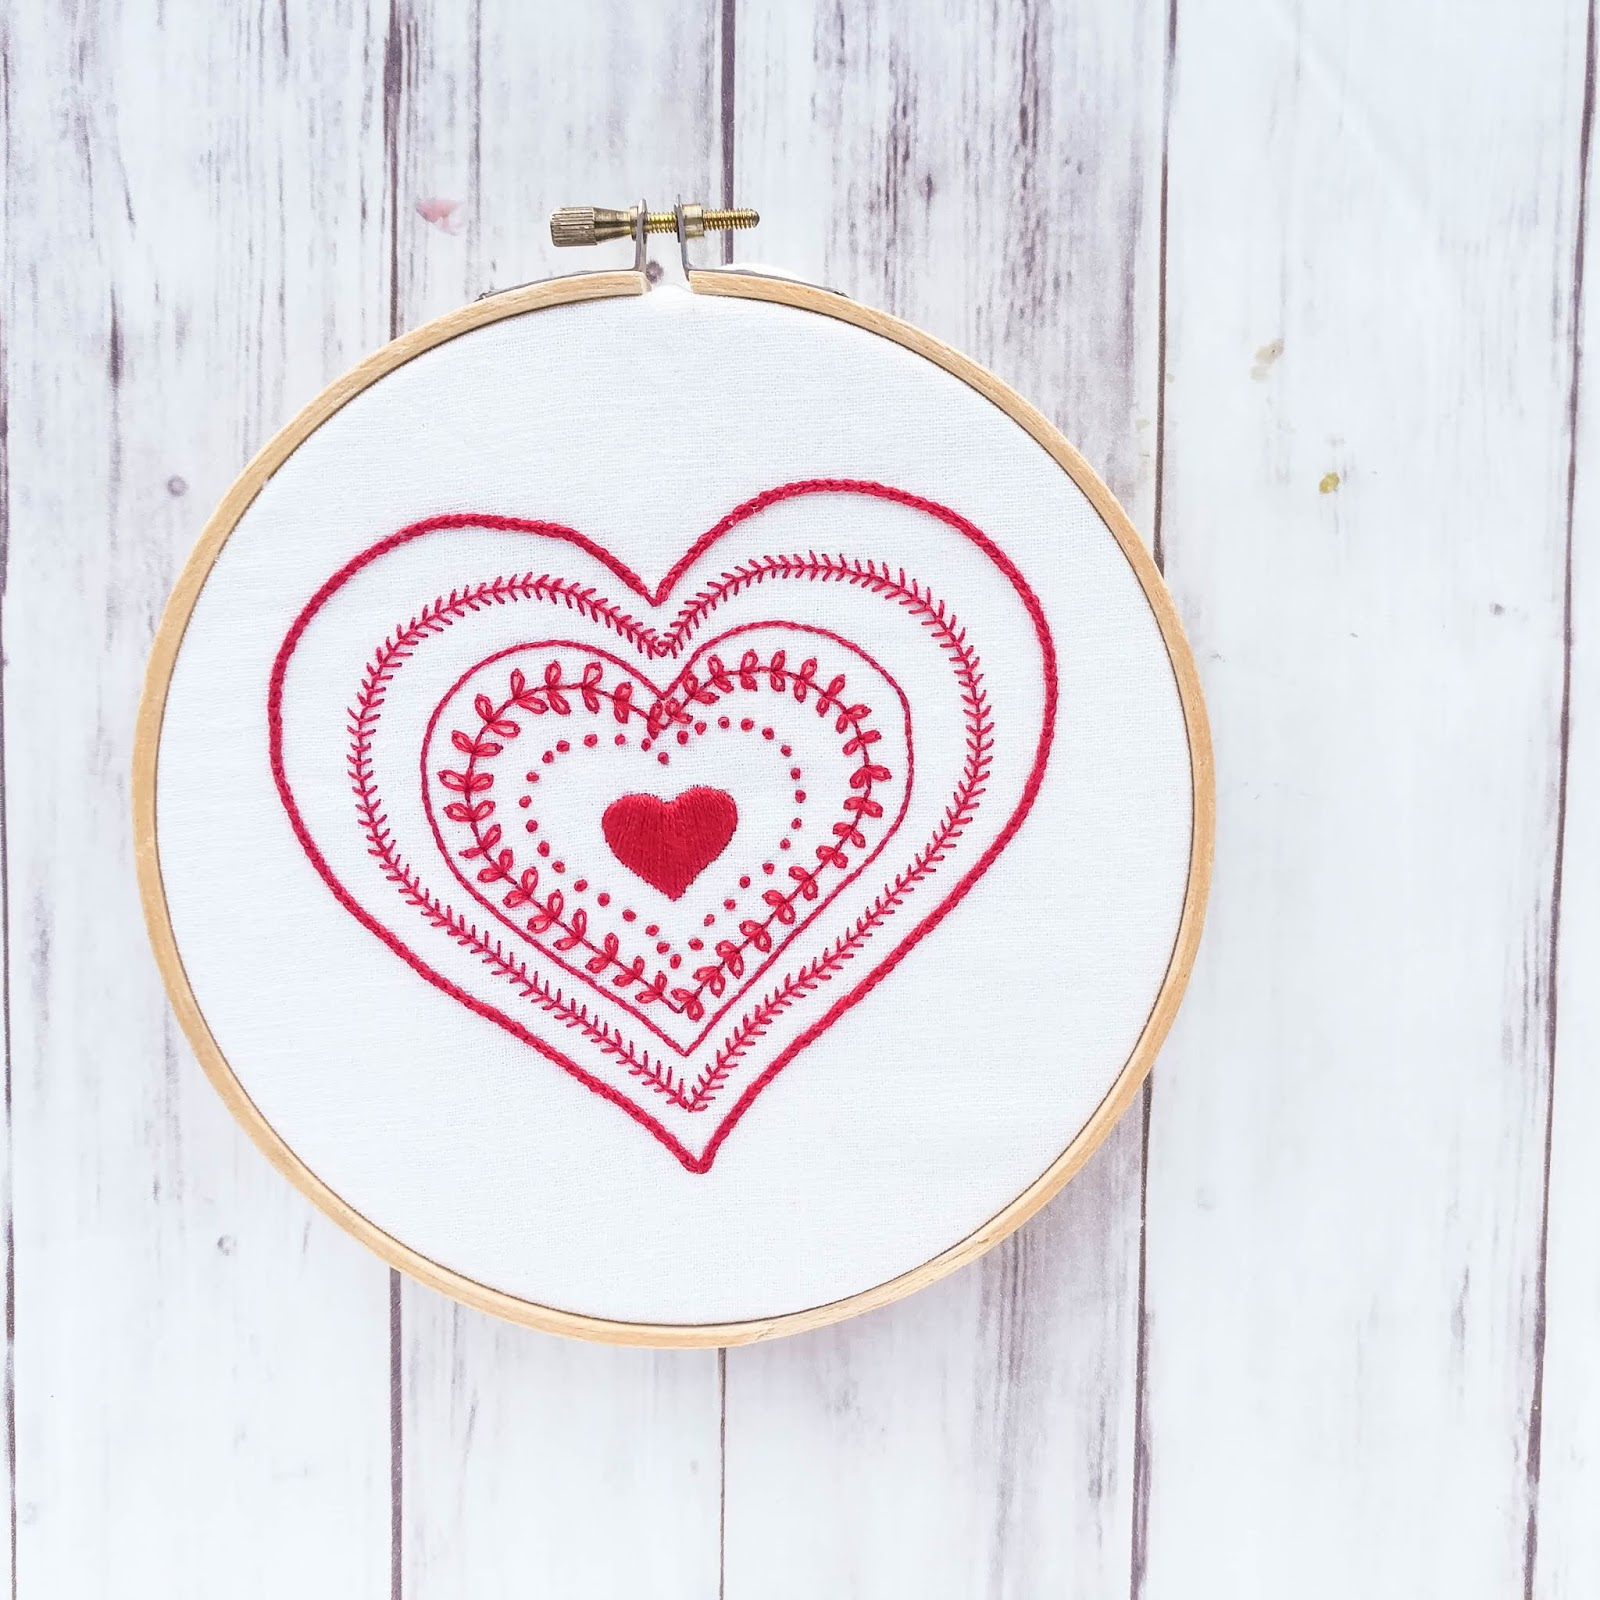 Scandinavian Embroidery Patterns A Lively Hope A Lively Hope Stitching Club Hygge Heart